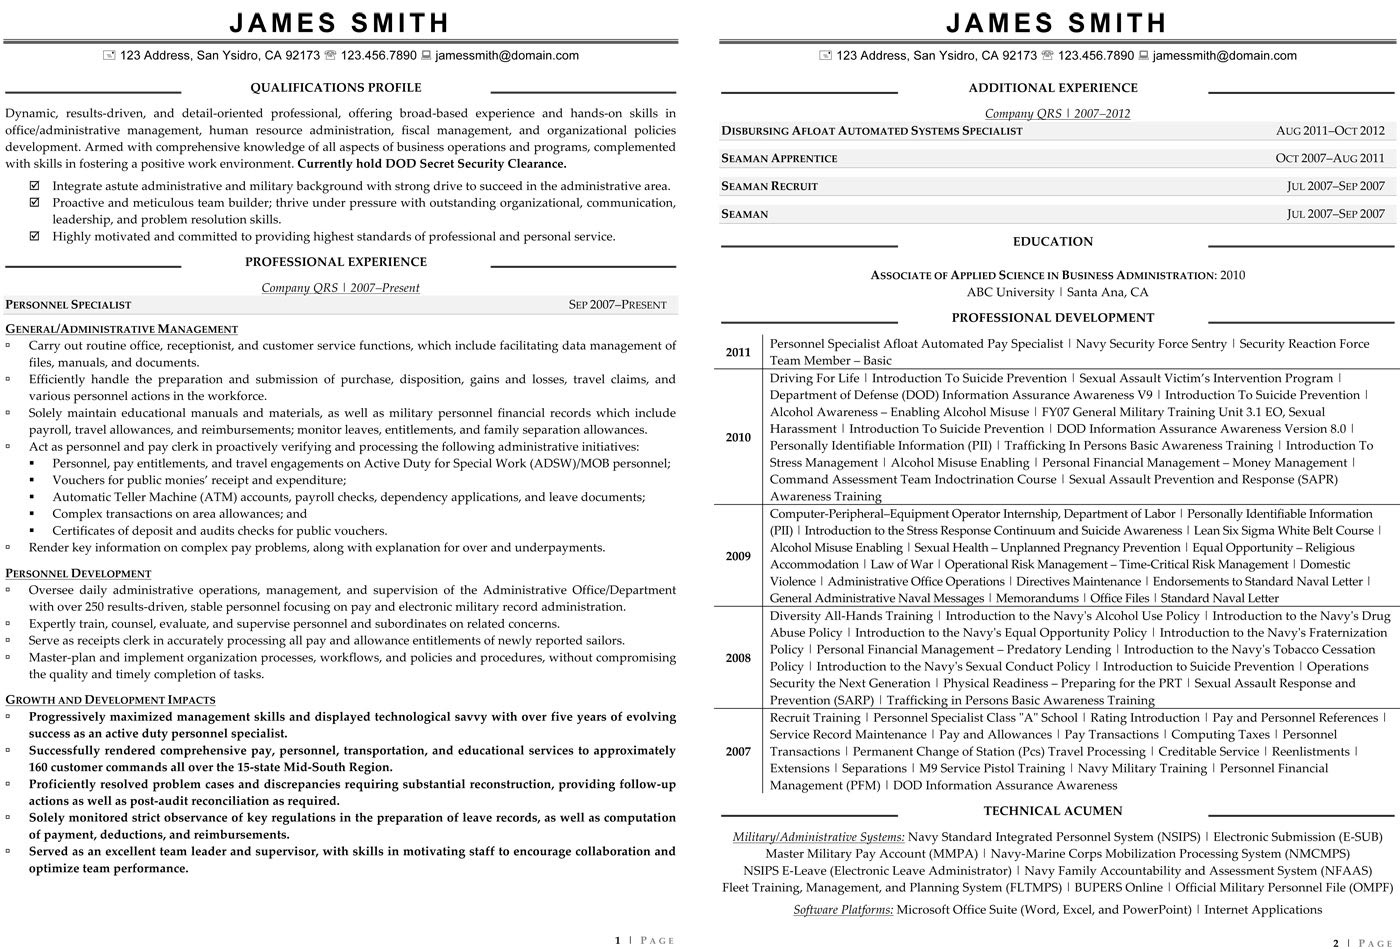 human resource generalist resume - Human Resource Resume Samples